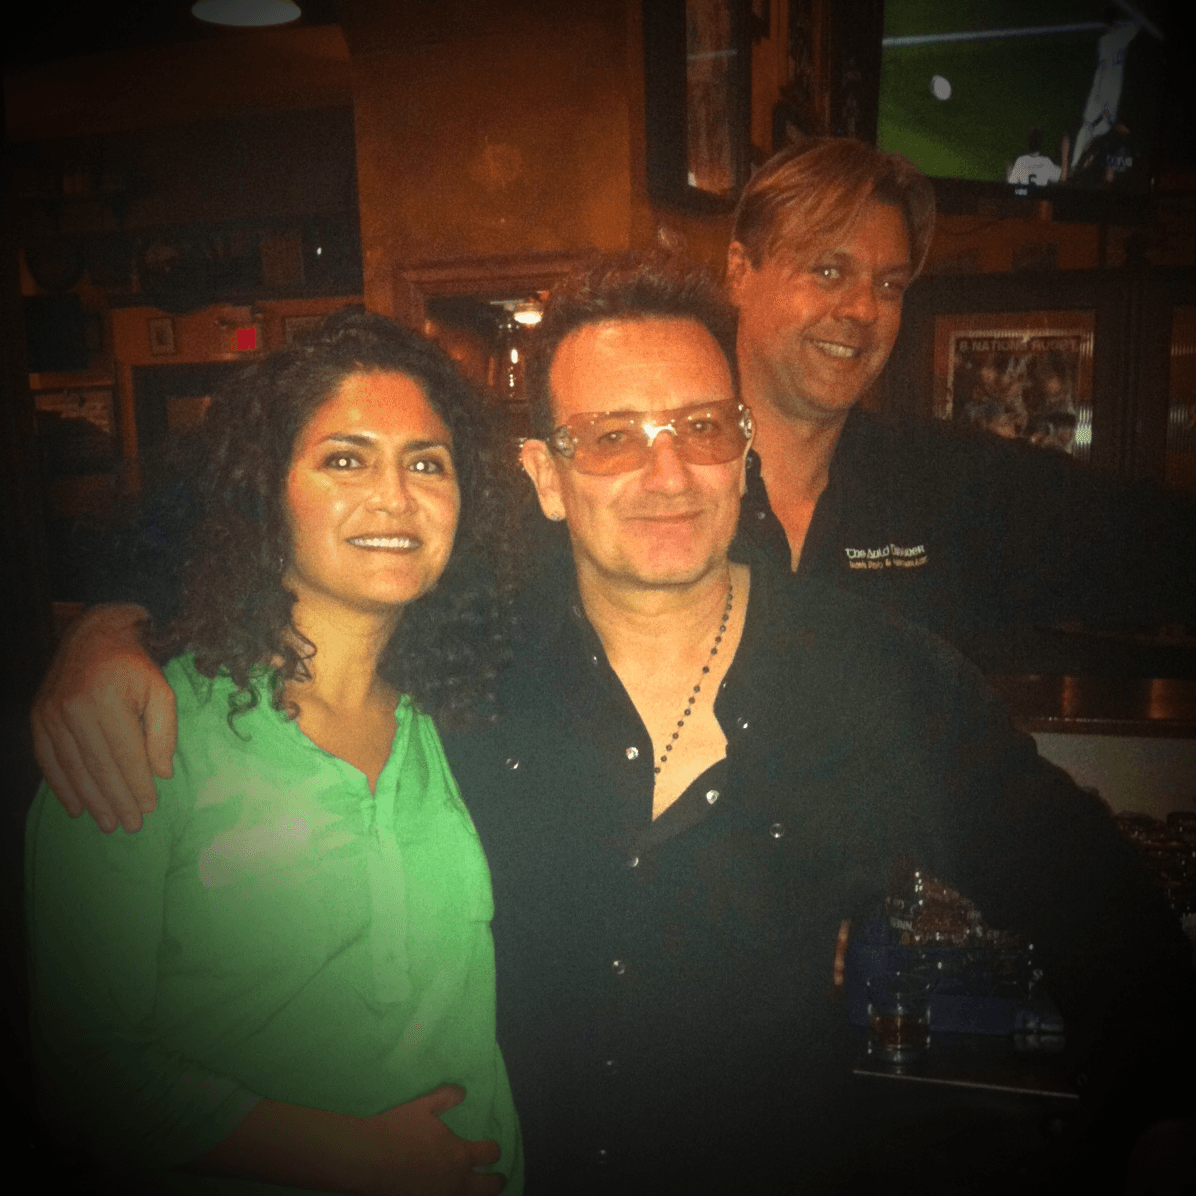 Bono gets photo bombed by local Long Beach man